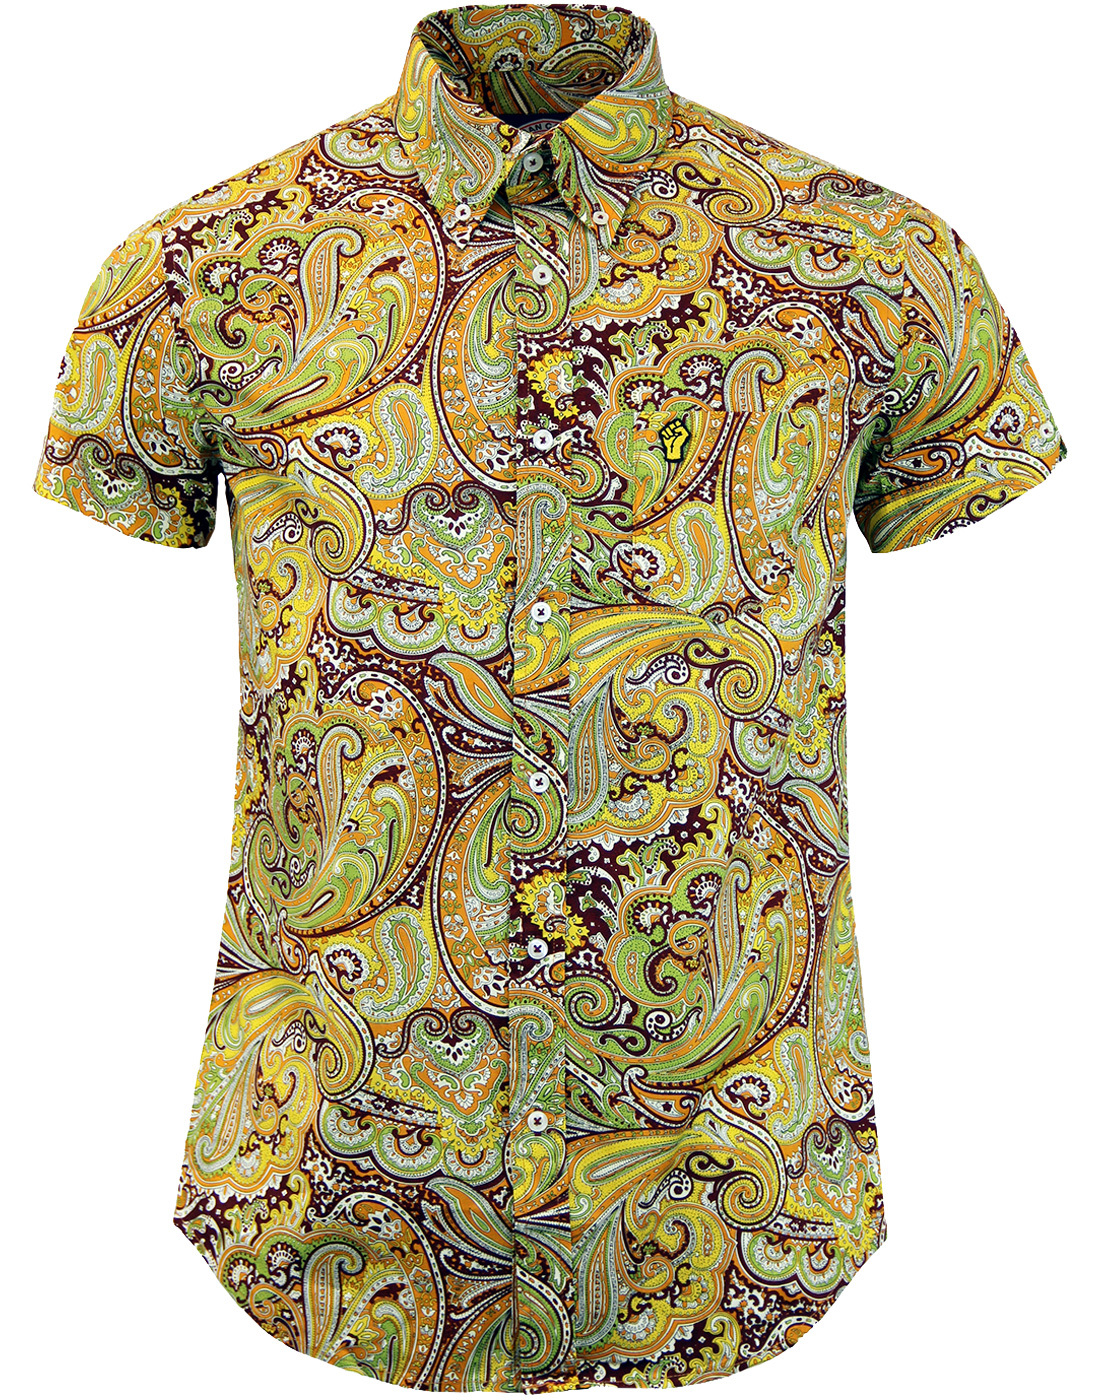 WIGAN CASINO Retro Northern Soul Paisley  Shirt